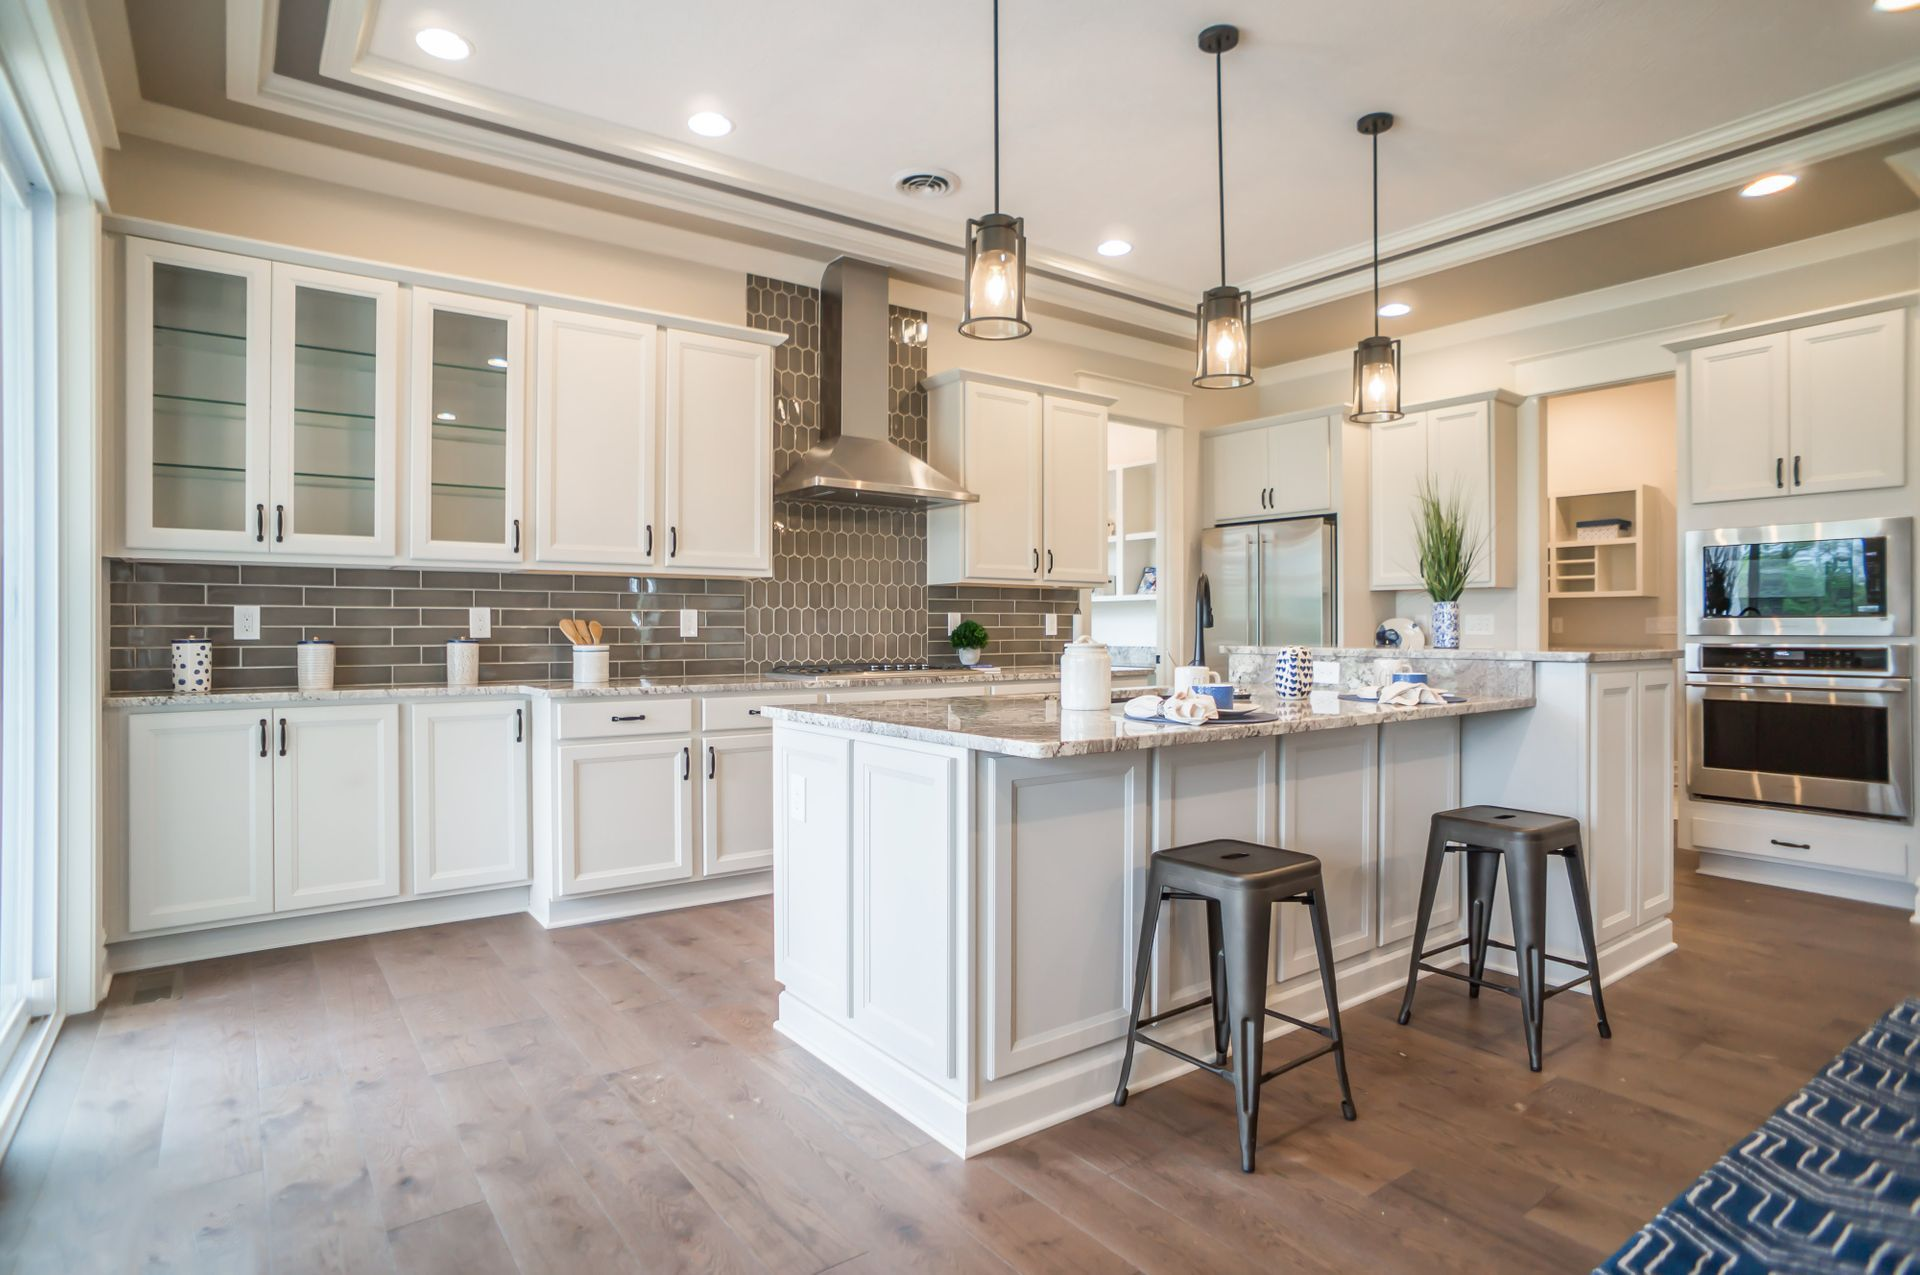 Tile Extends All The Way To The Ceiling Even Though The Cabinets Do Not Large Laundry Rooms Great Rooms Okemos